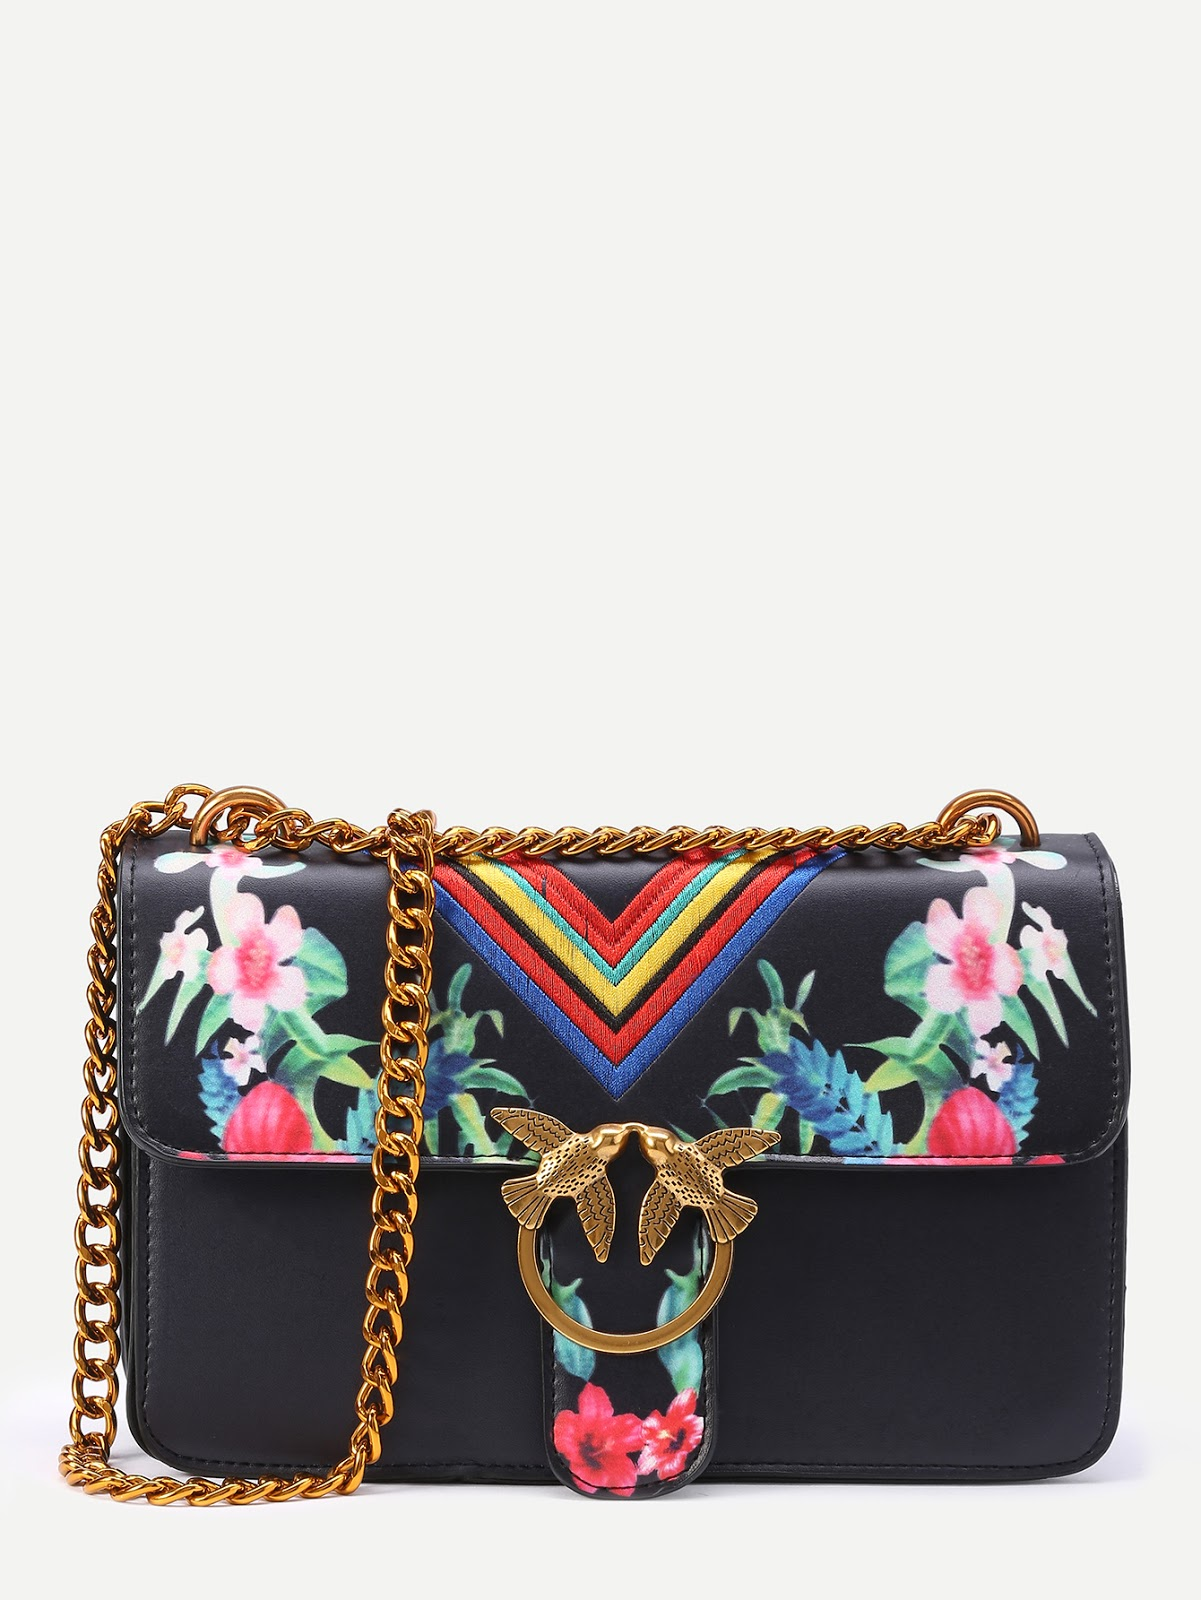 Floral Print Chevron Embroidery Flap Bag With Bird